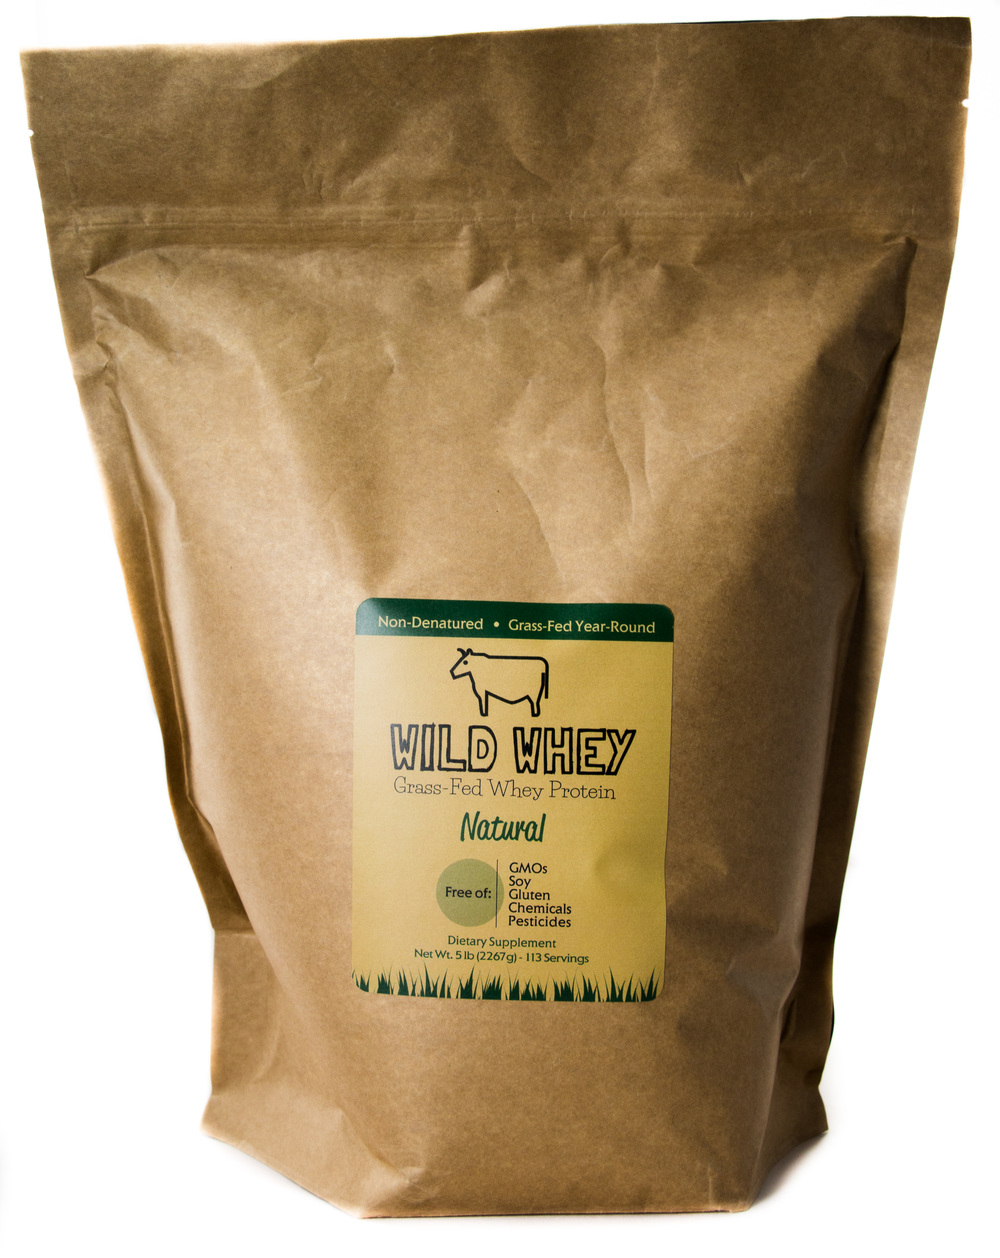 Our 2.5lb and 5lb bulk Natural Flavor options come in environmentally-friendly food bags.